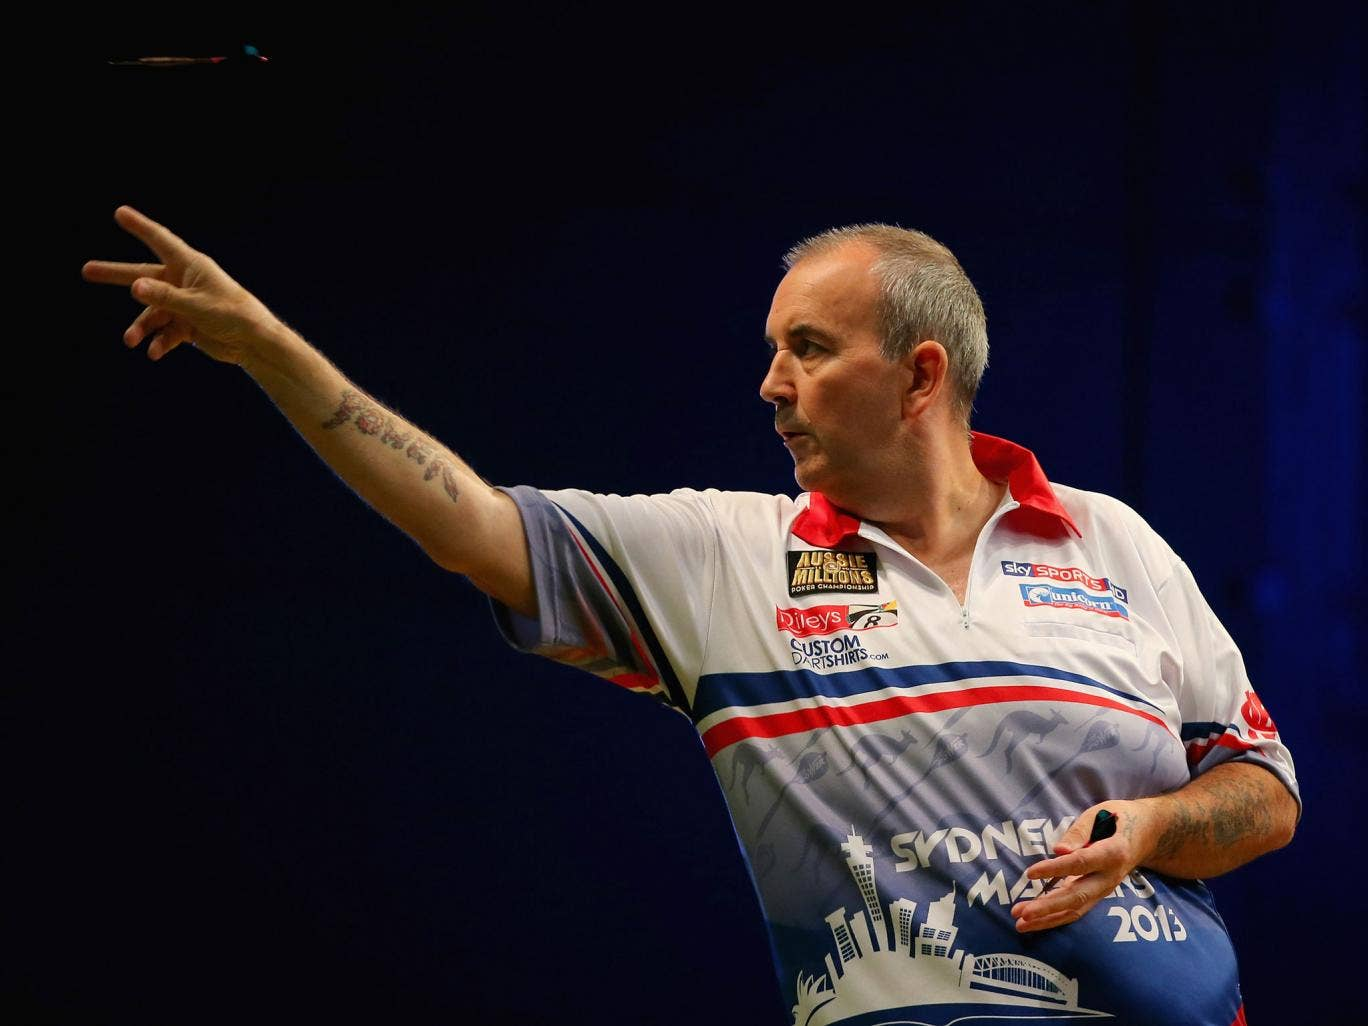 Phil Taylor crushed Dave Chisnall 6-0 in the World Darts Grand Prix